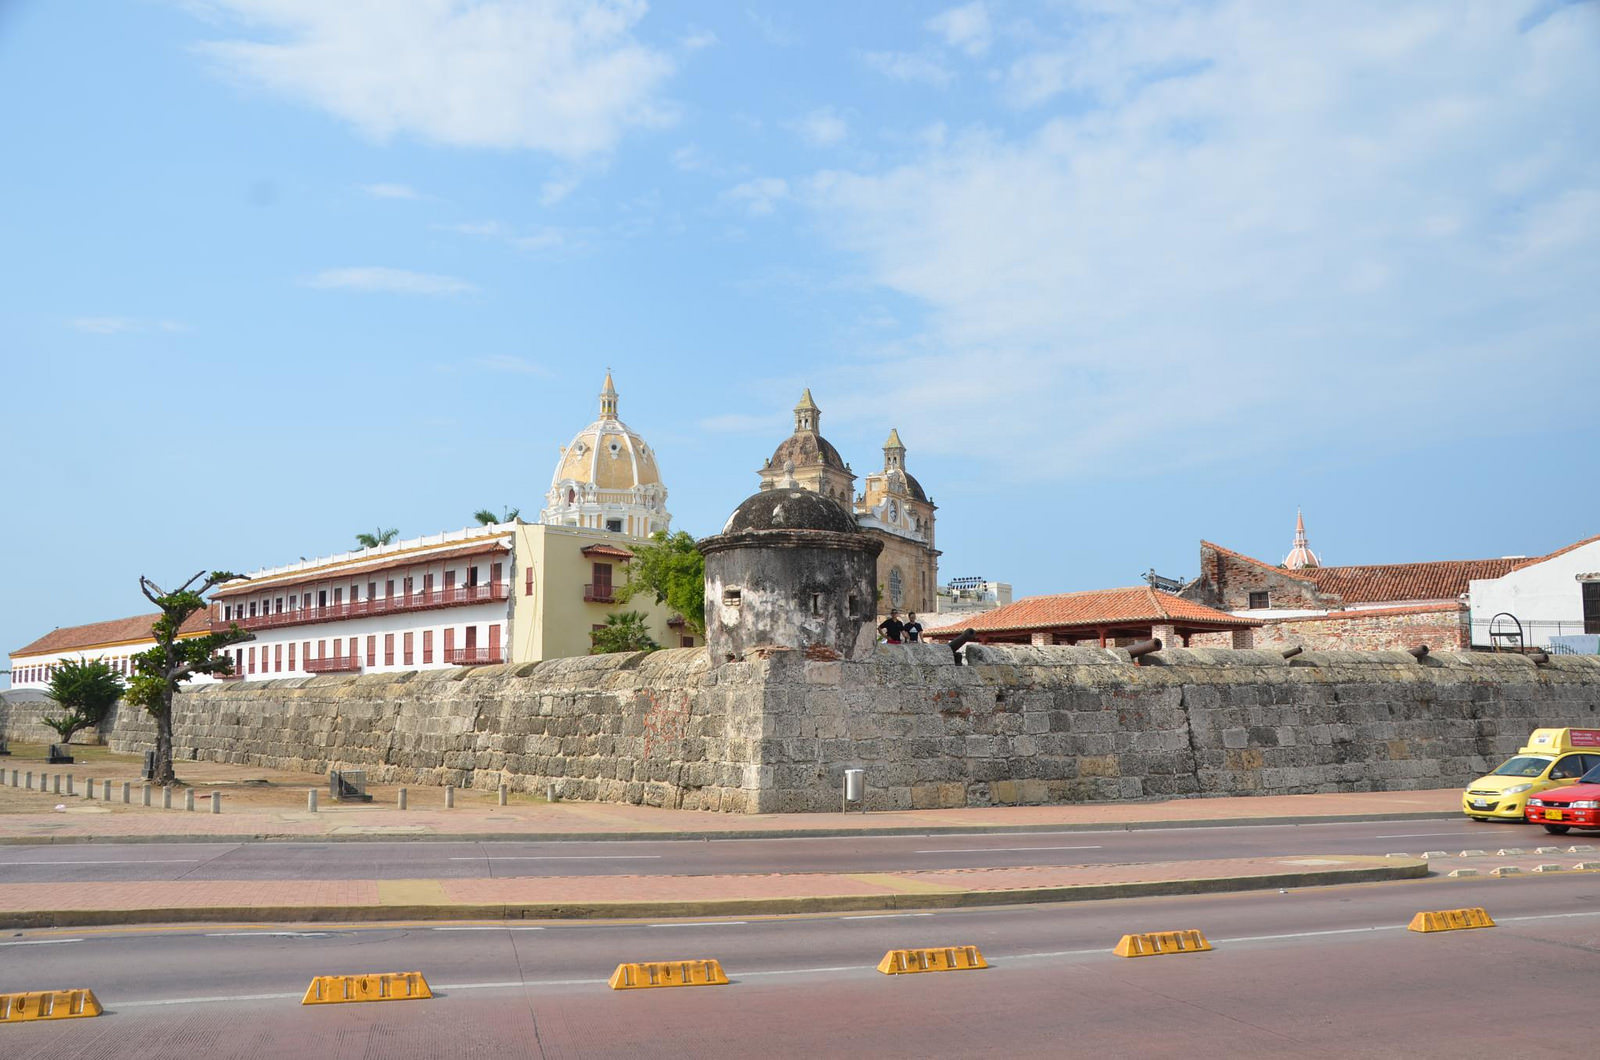 Las Murallas, the walls of Cartagena by Joe Ross (CC)